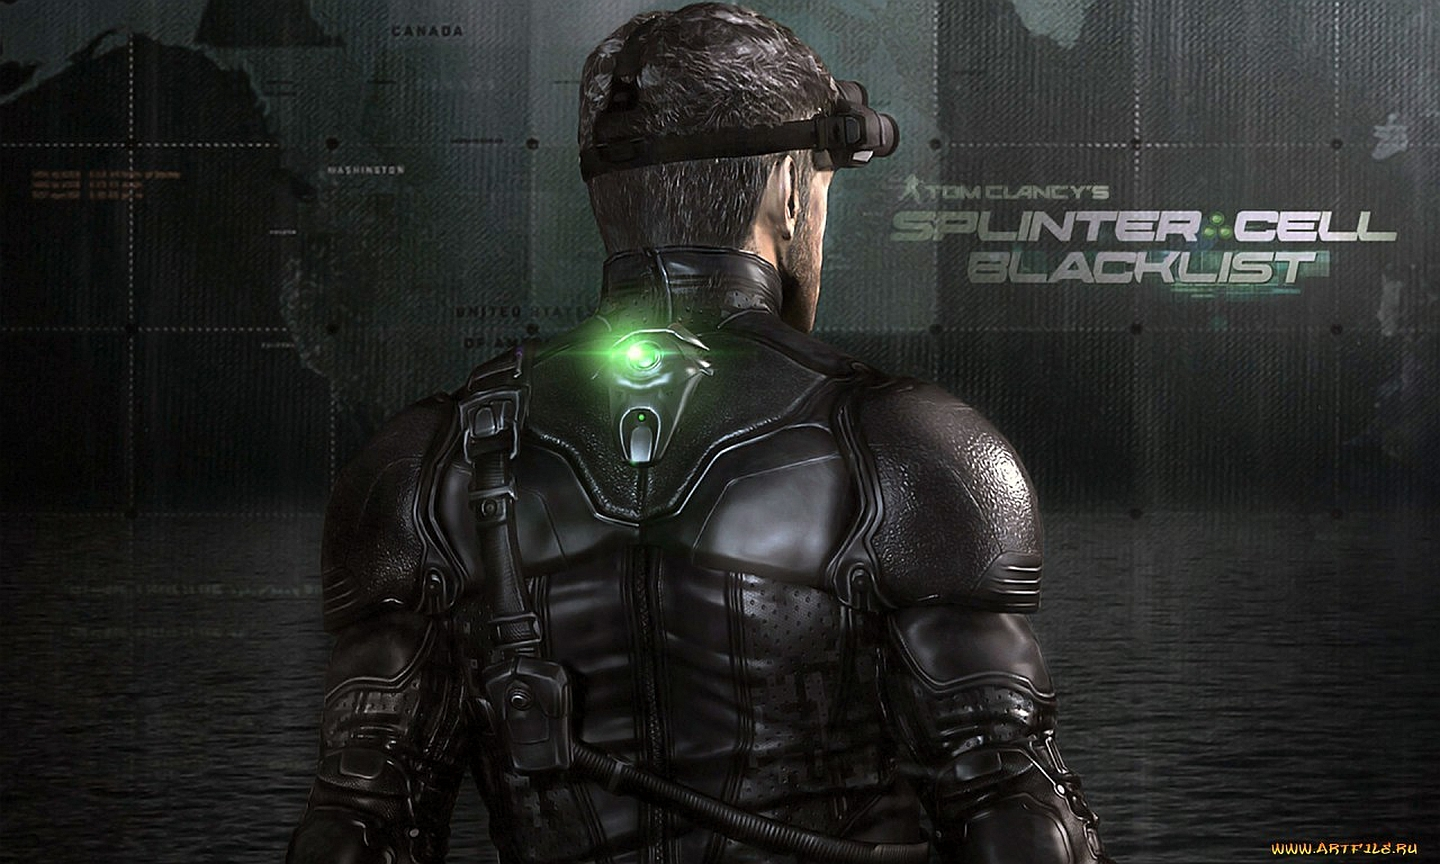 tom clancy's splinter cell: blacklist wallpaper and background image